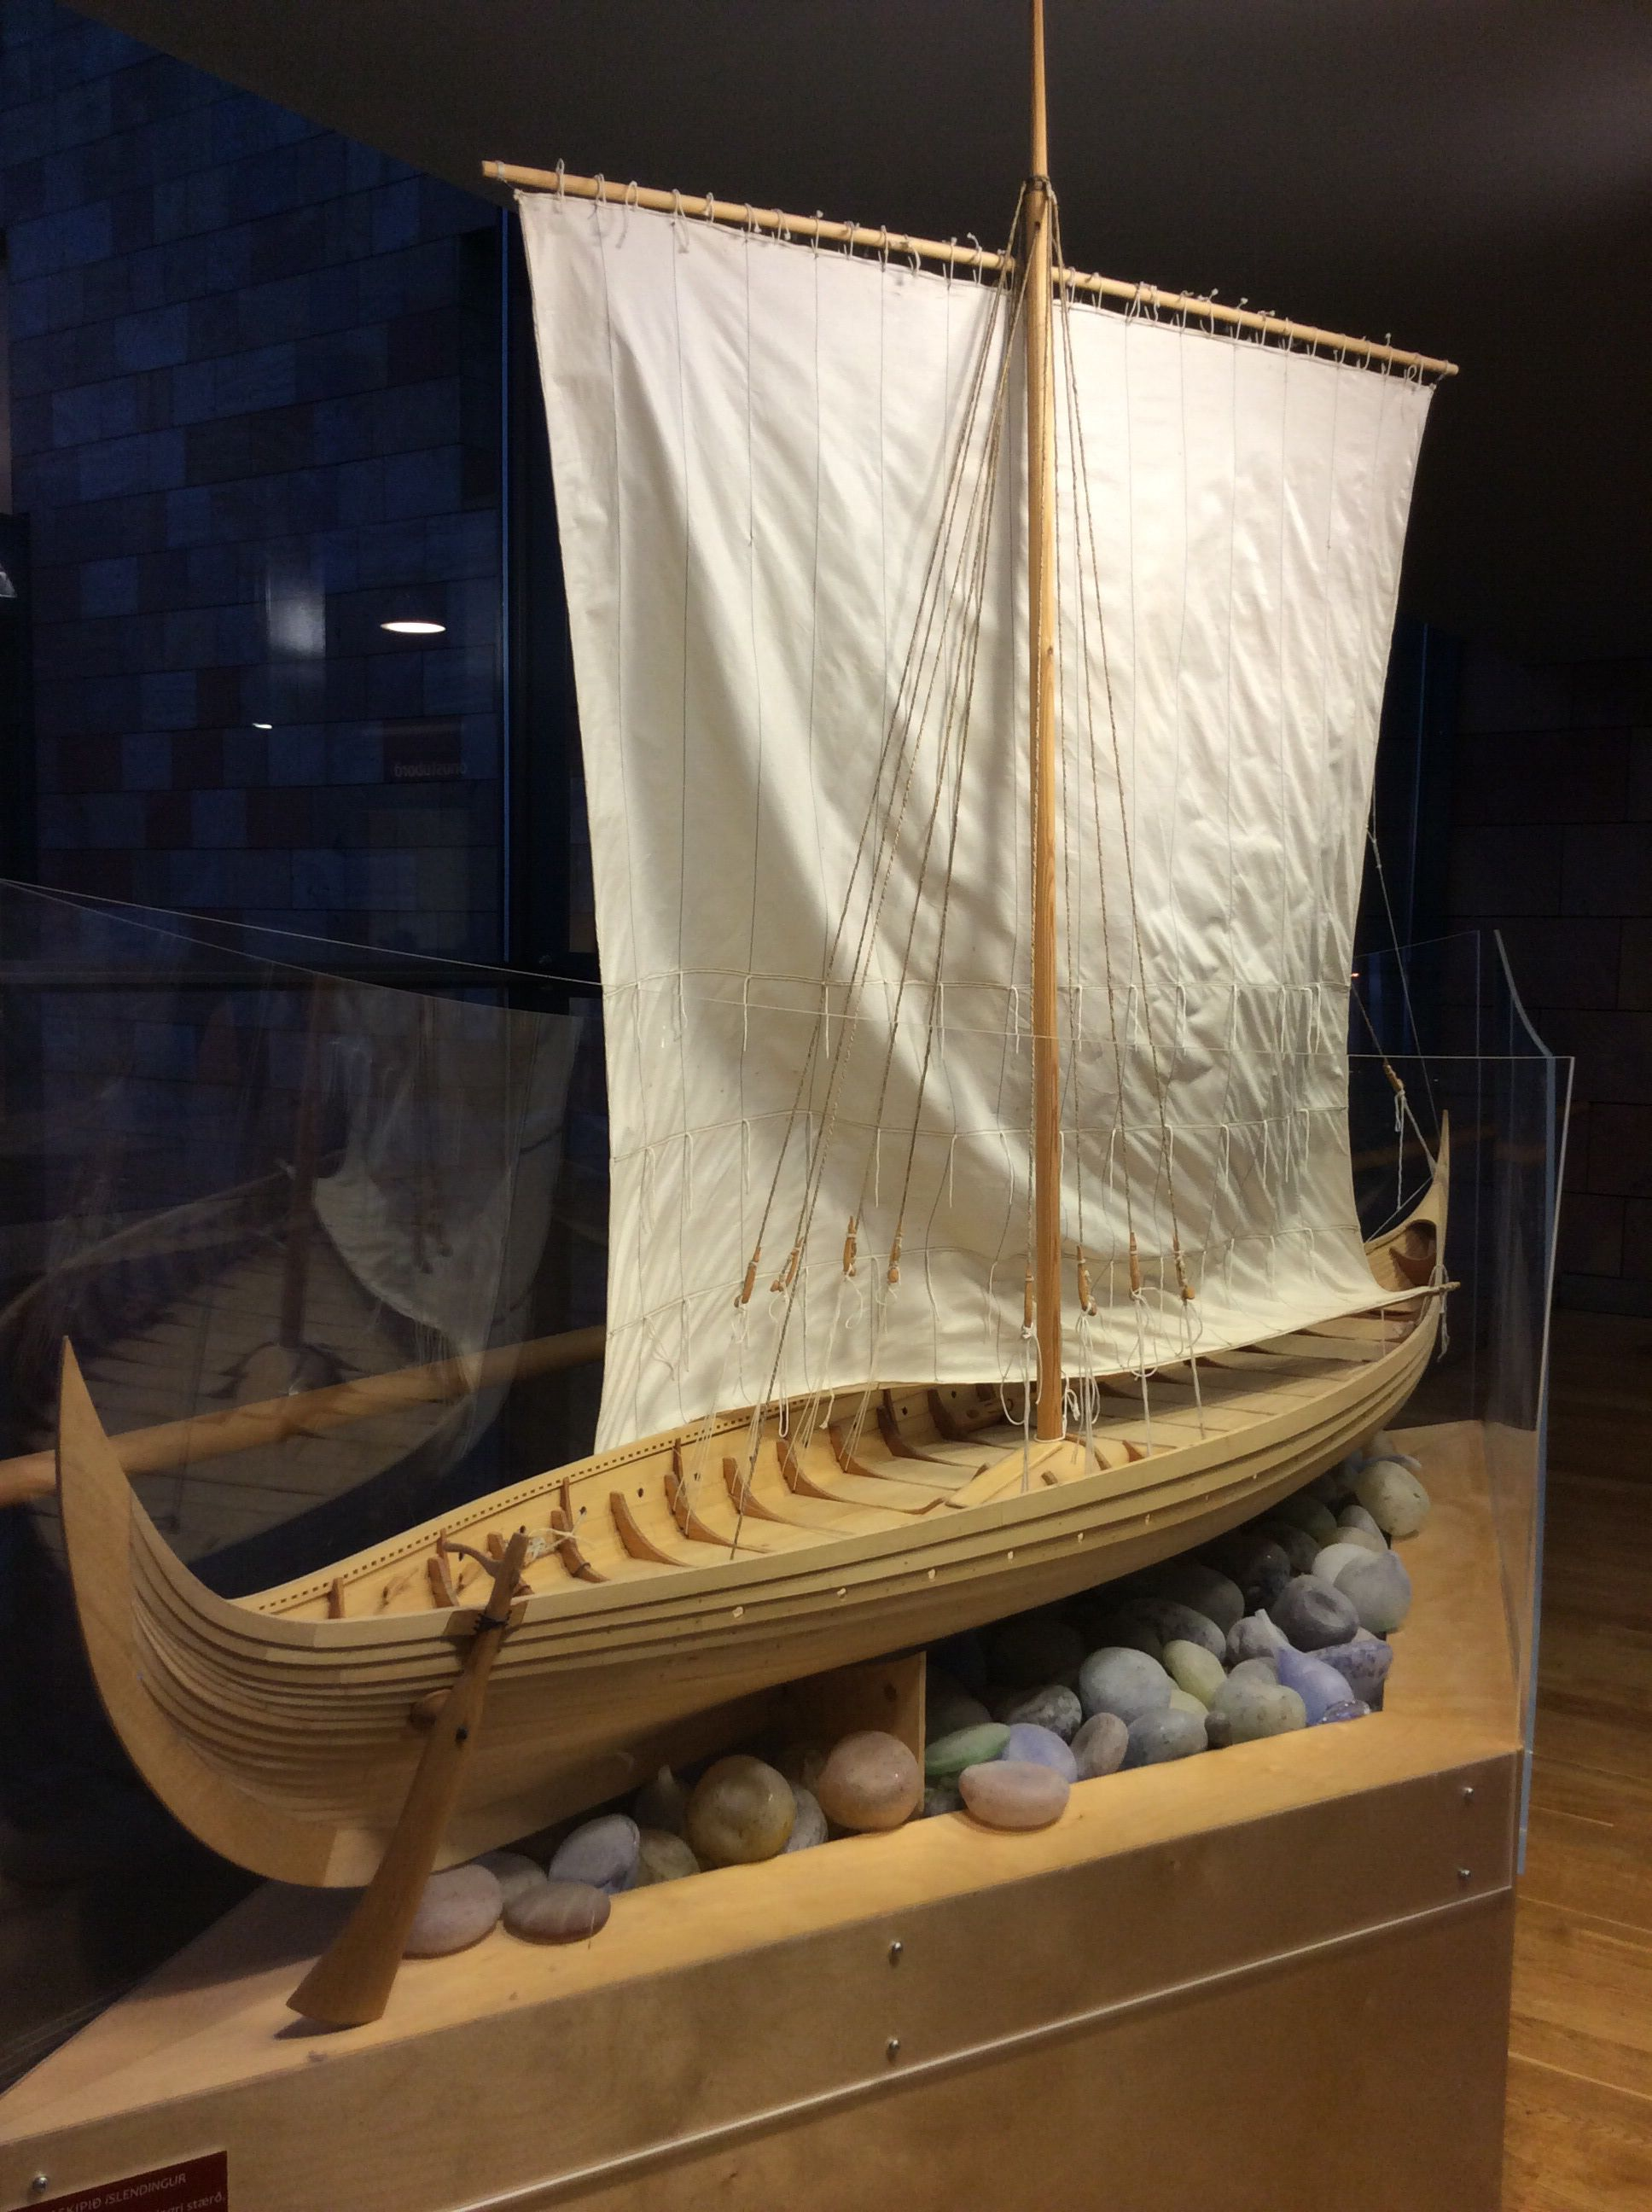 Viking ship replica in the Keflavik Airport, Iceland